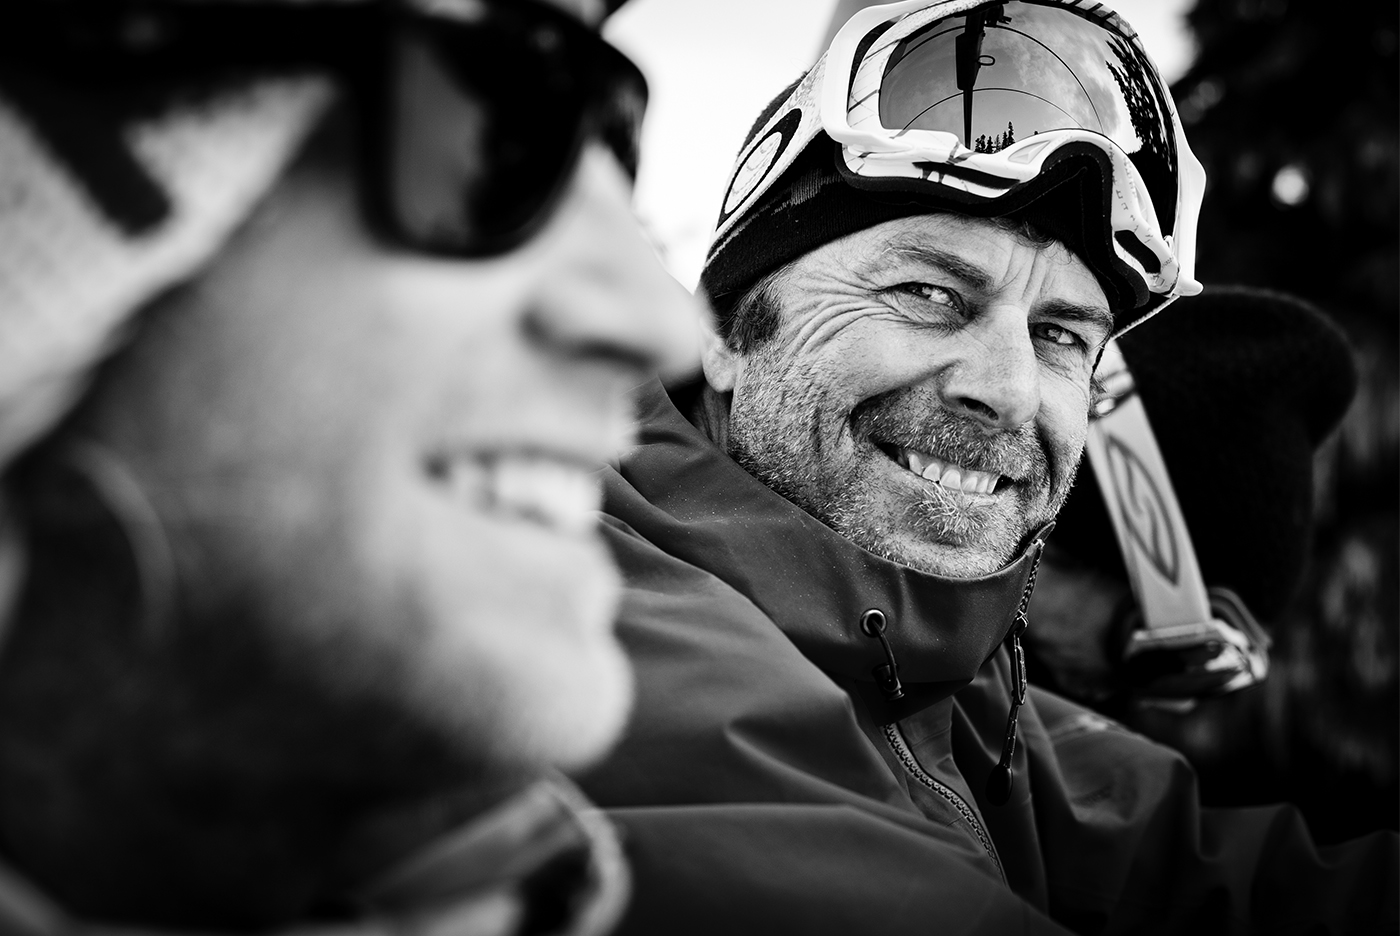 #WhistlerUnfiltered: Behind the Lens